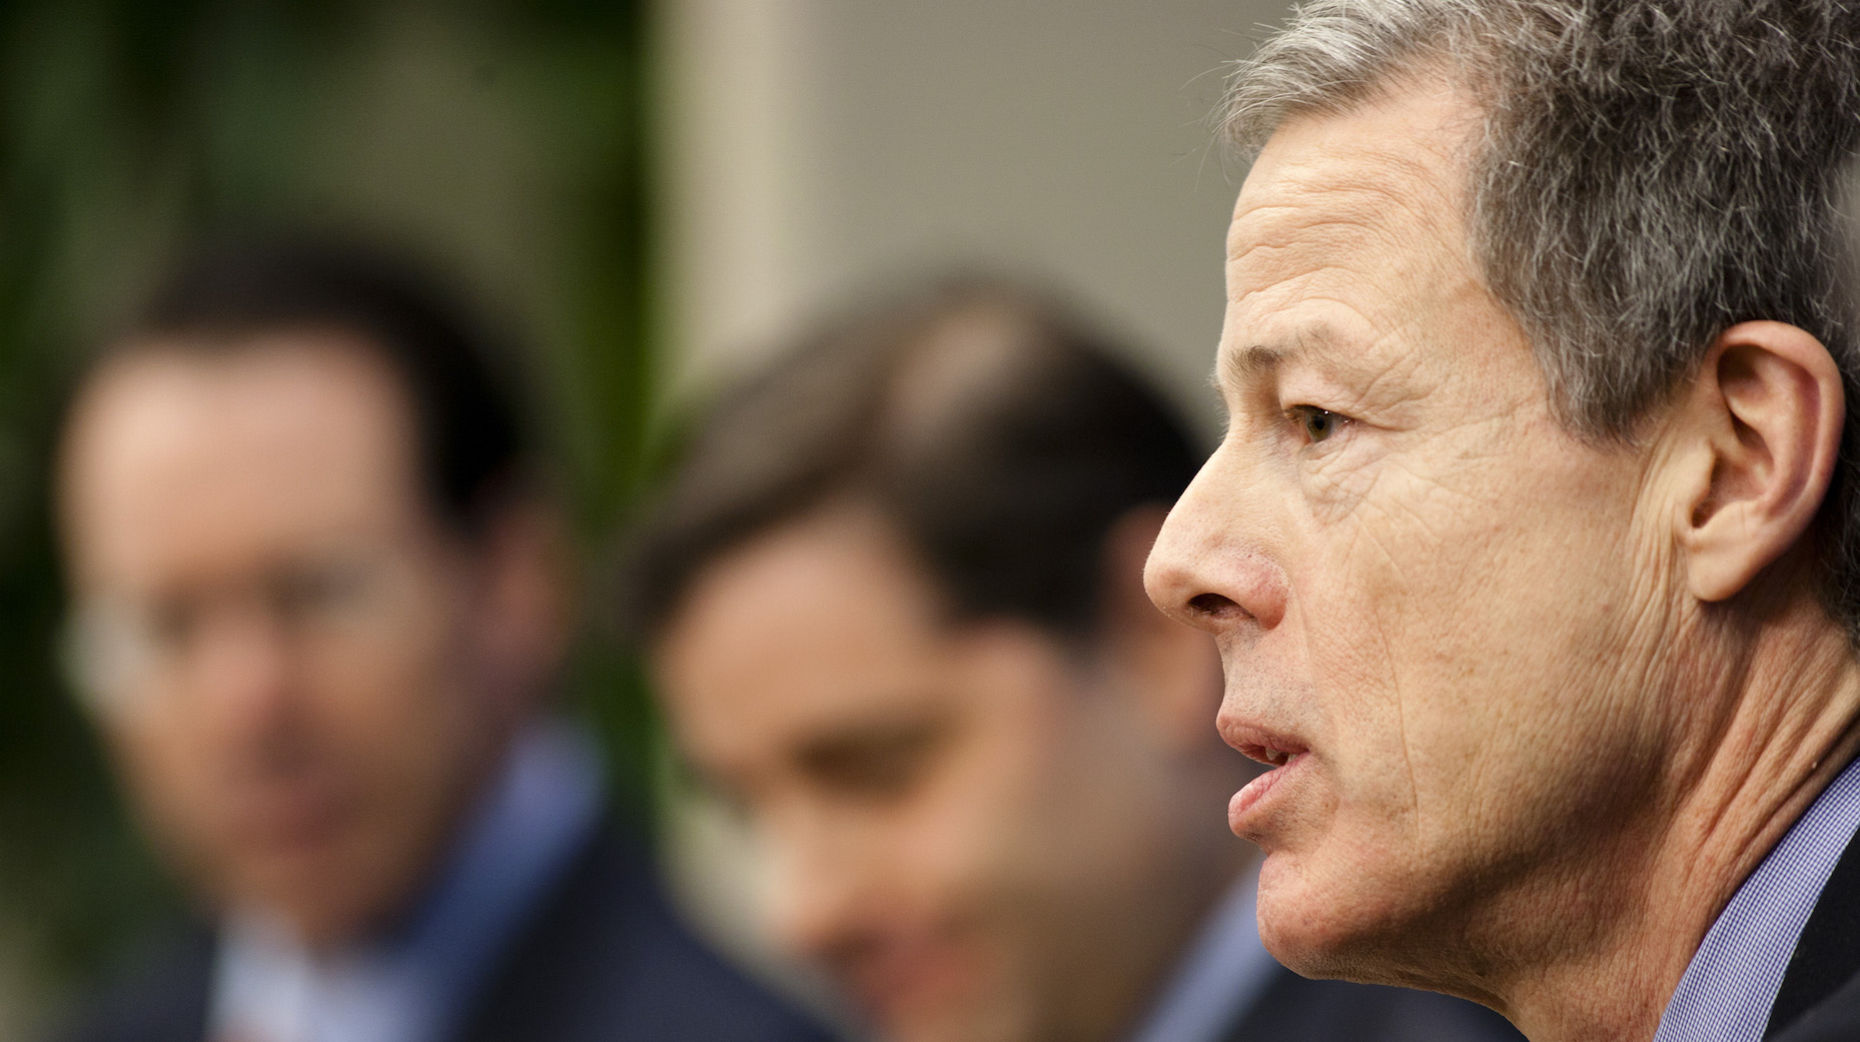 Time Warner CEO Jeff Bewkes with AT&T CEO Randall Stephenson in the background. Photo by Bloomberg.